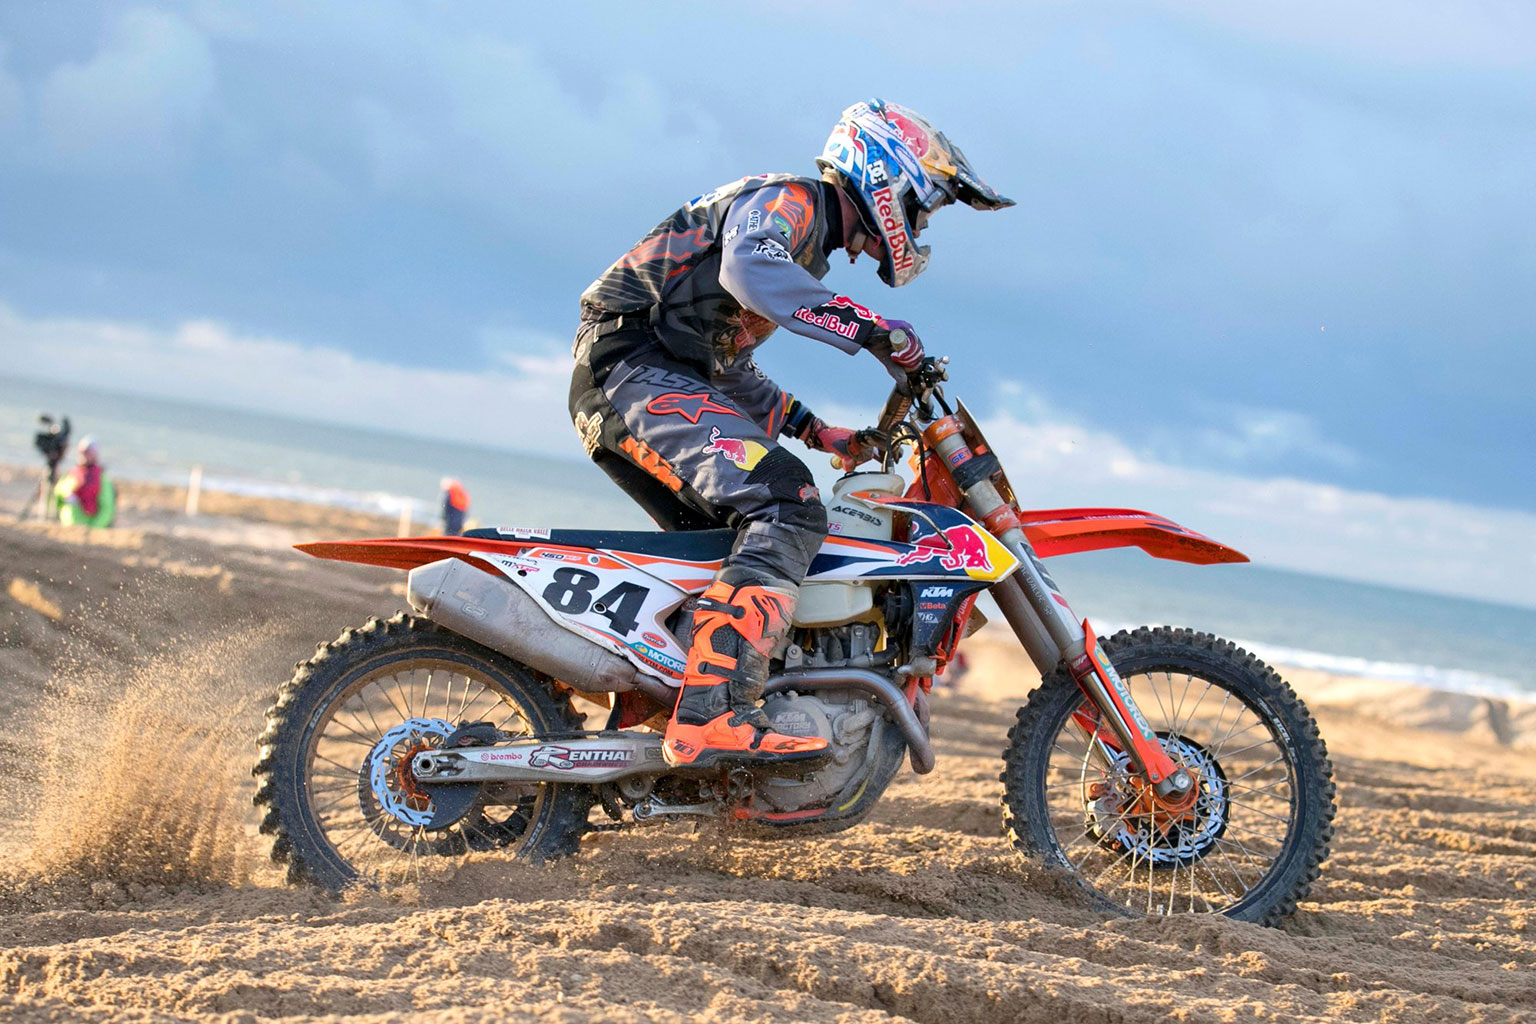 Herlings - the sand master!